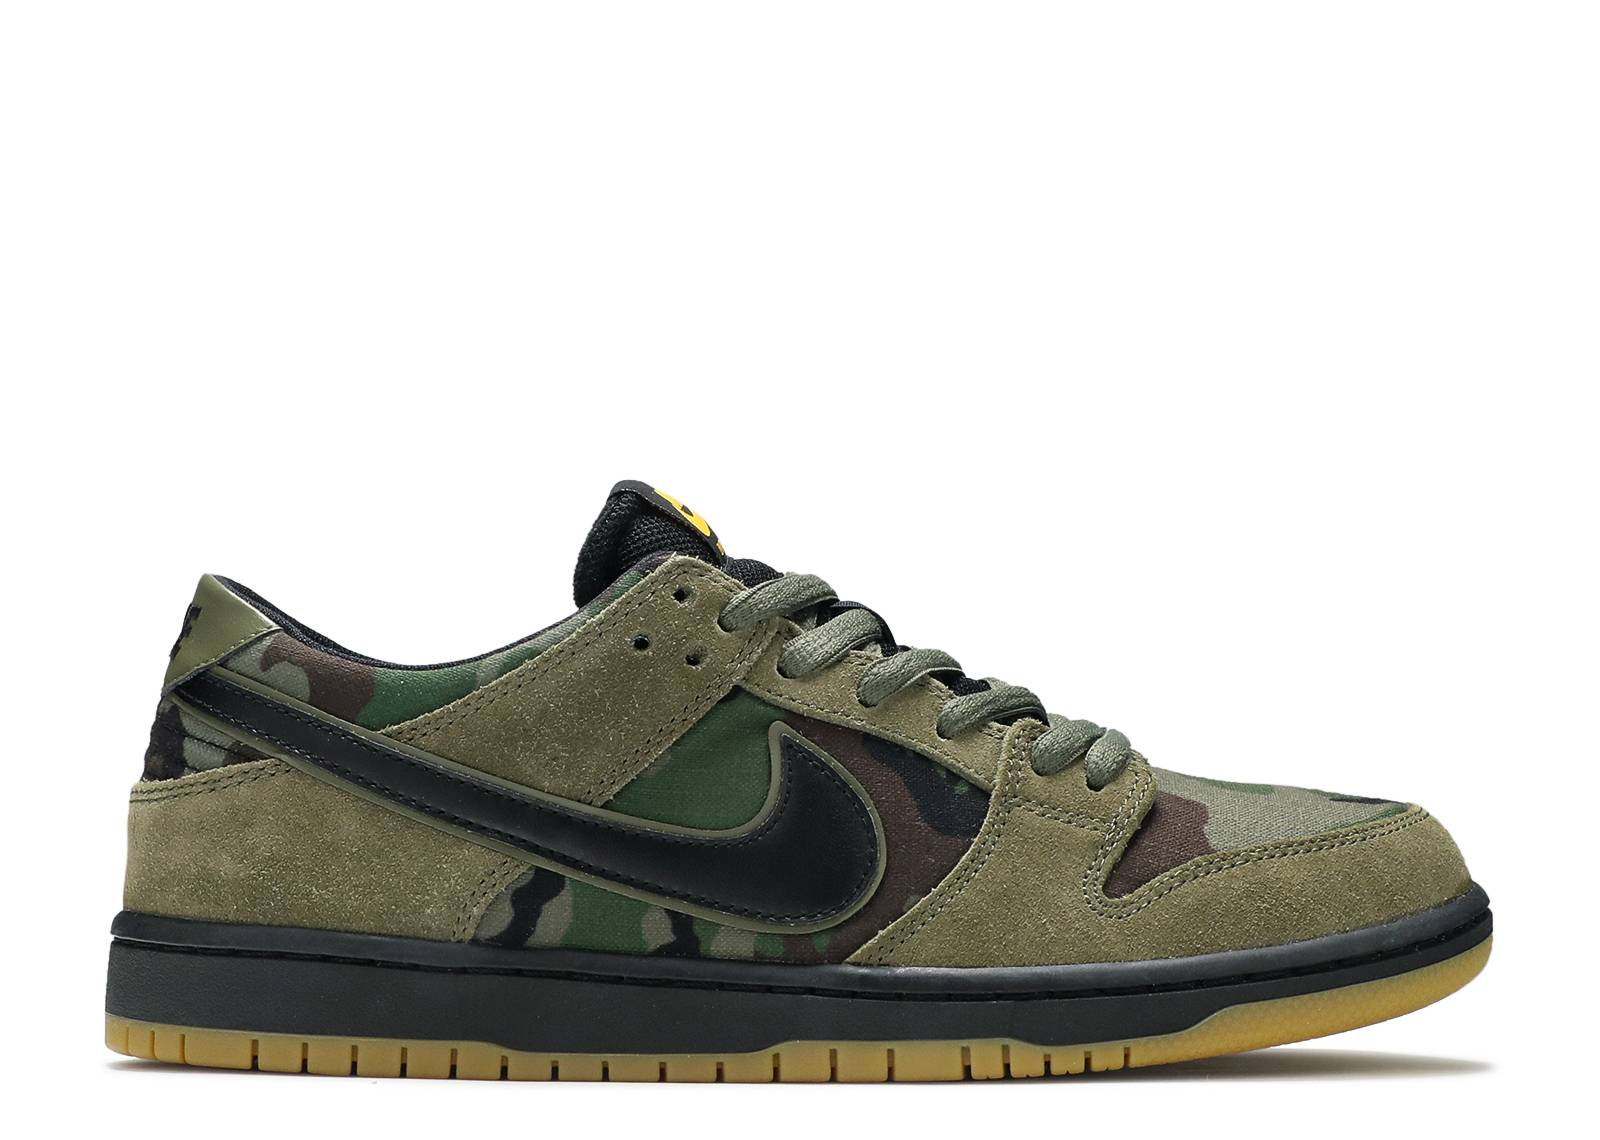 wholesale dealer 33fb6 8ddd7 Zoom Dunk Low Pro SB 'Camo'